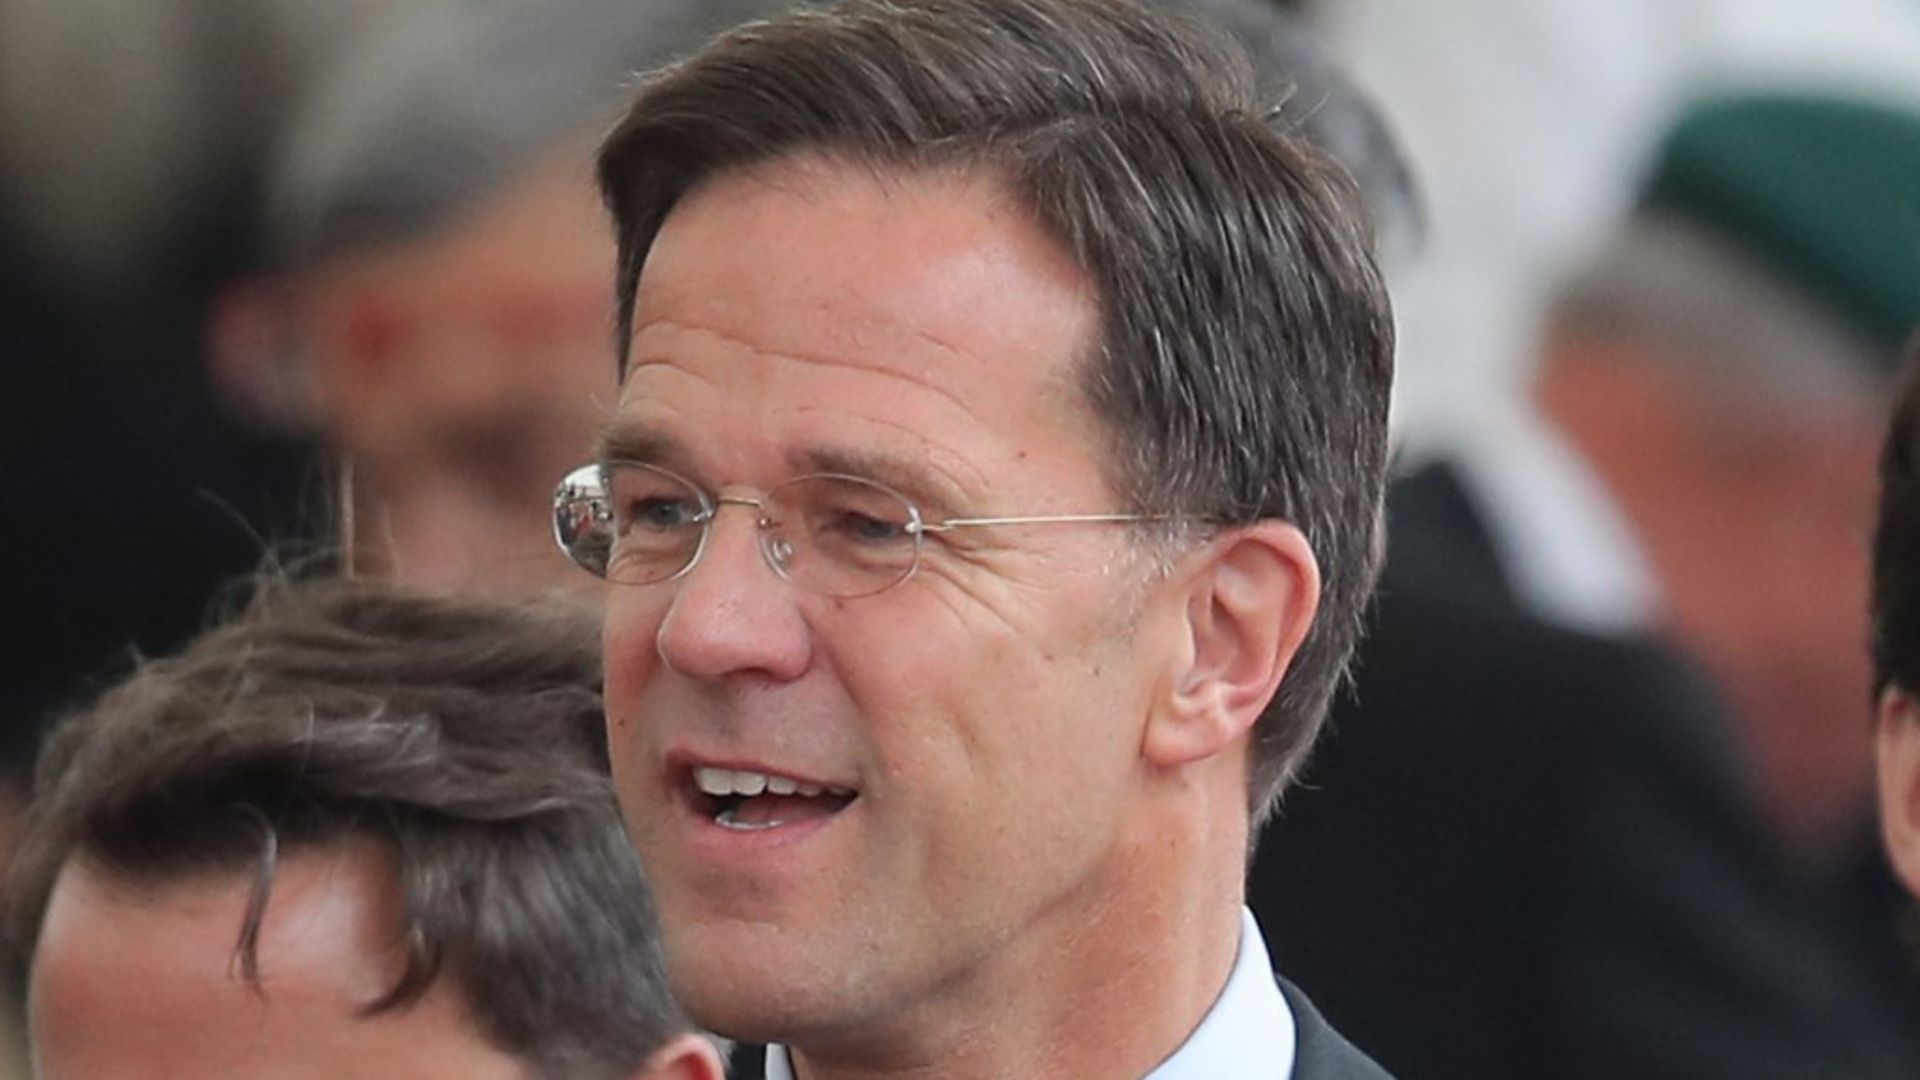 Prime Minister of the Netherlands, Mark Rutte - Credit: PA Wire/PA Images